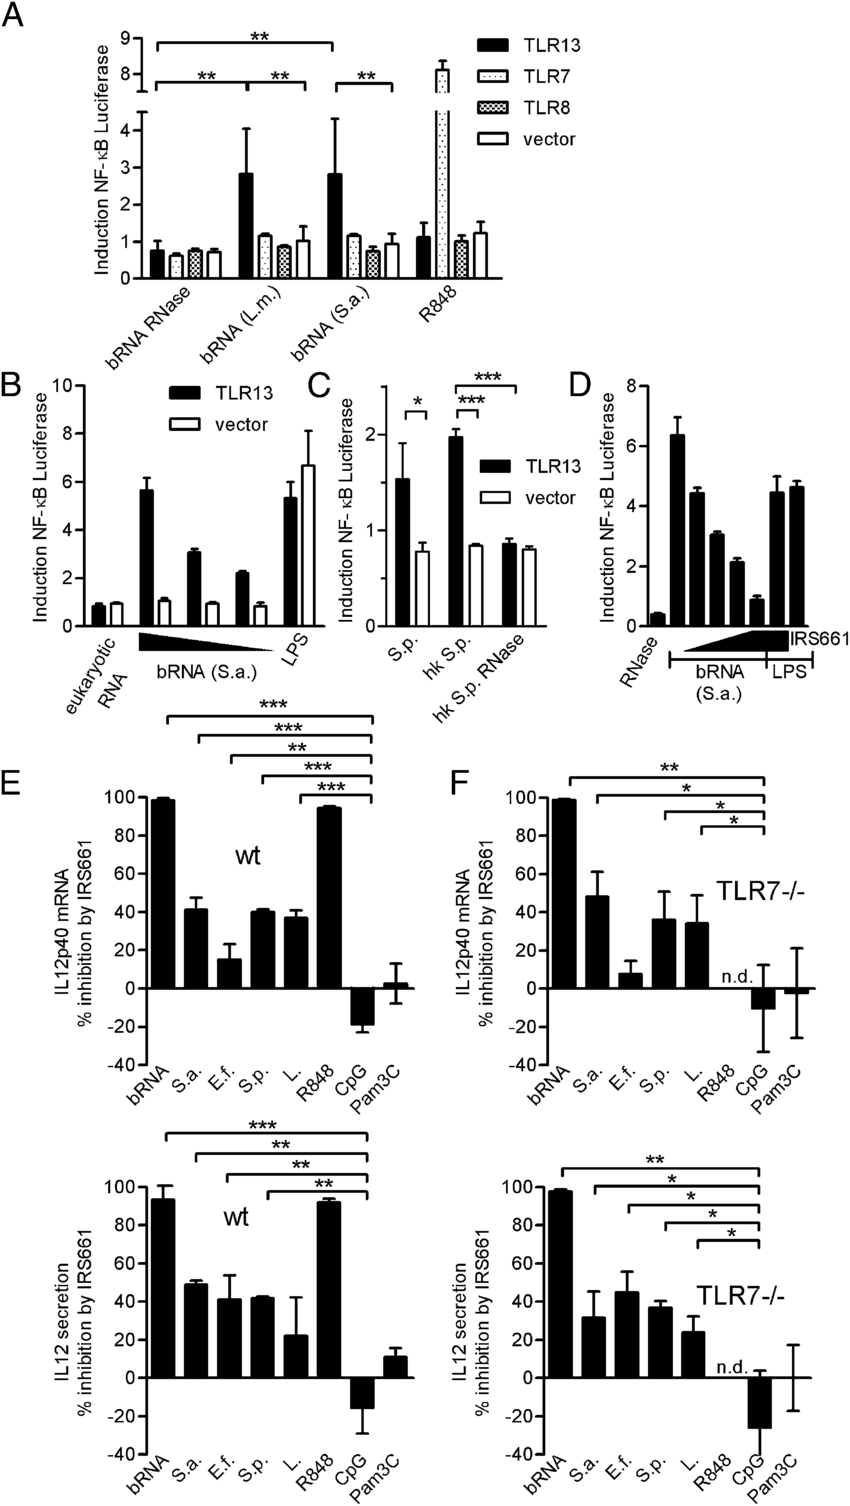 TLR13 is activated by bRNA and required for full DC